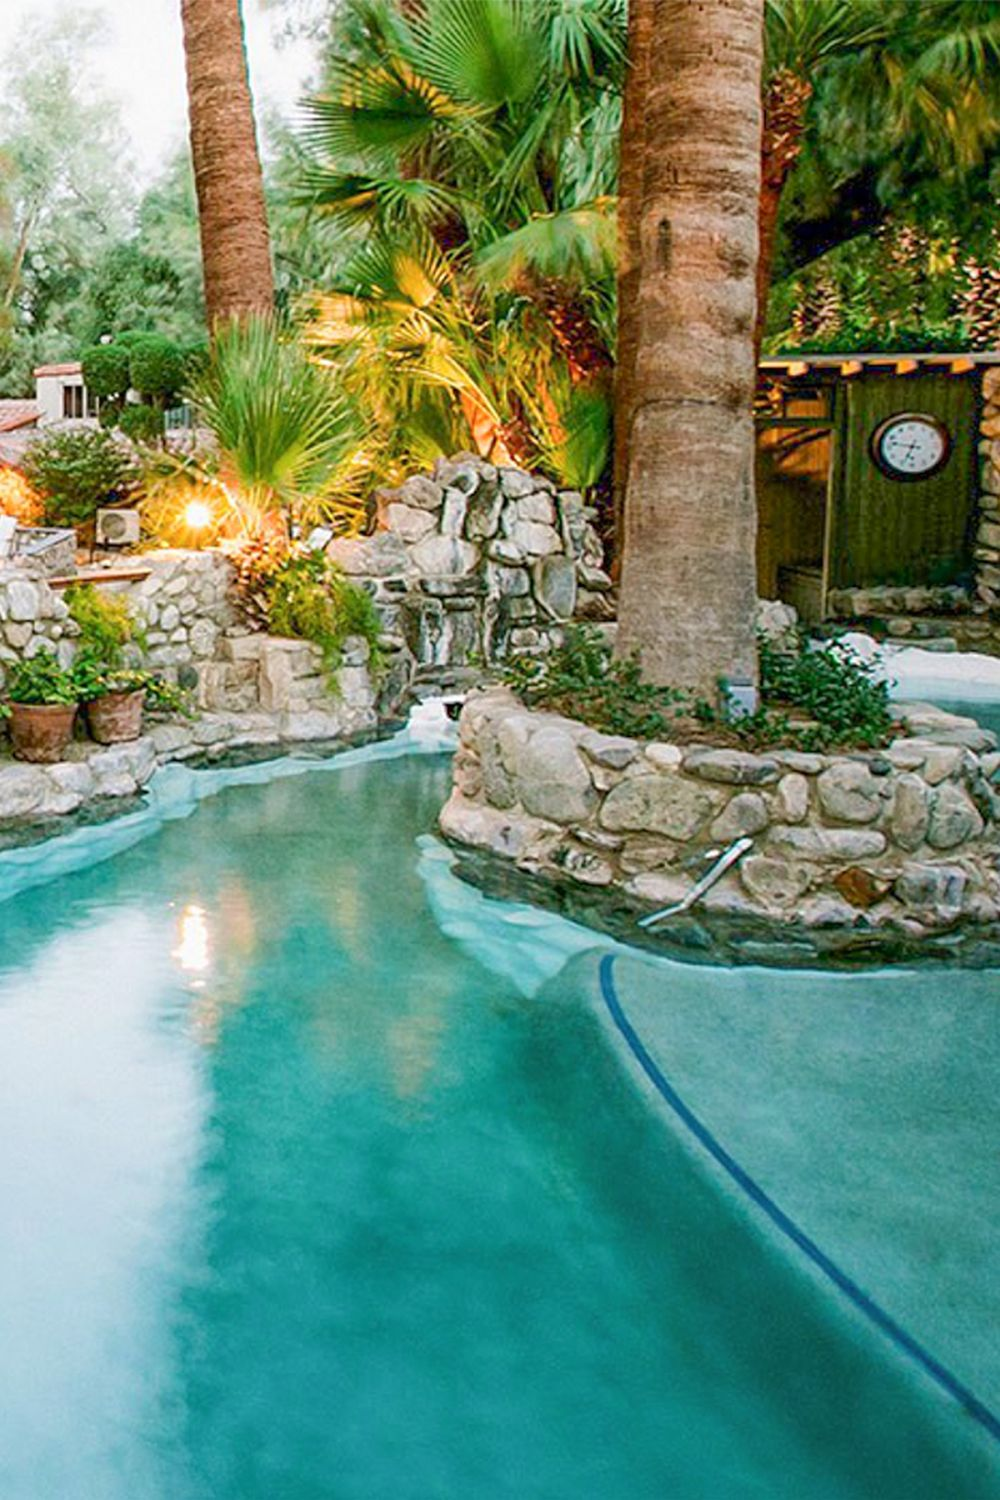 Hot Spring Resorts In The Town Of Desert Hot Springs Palm